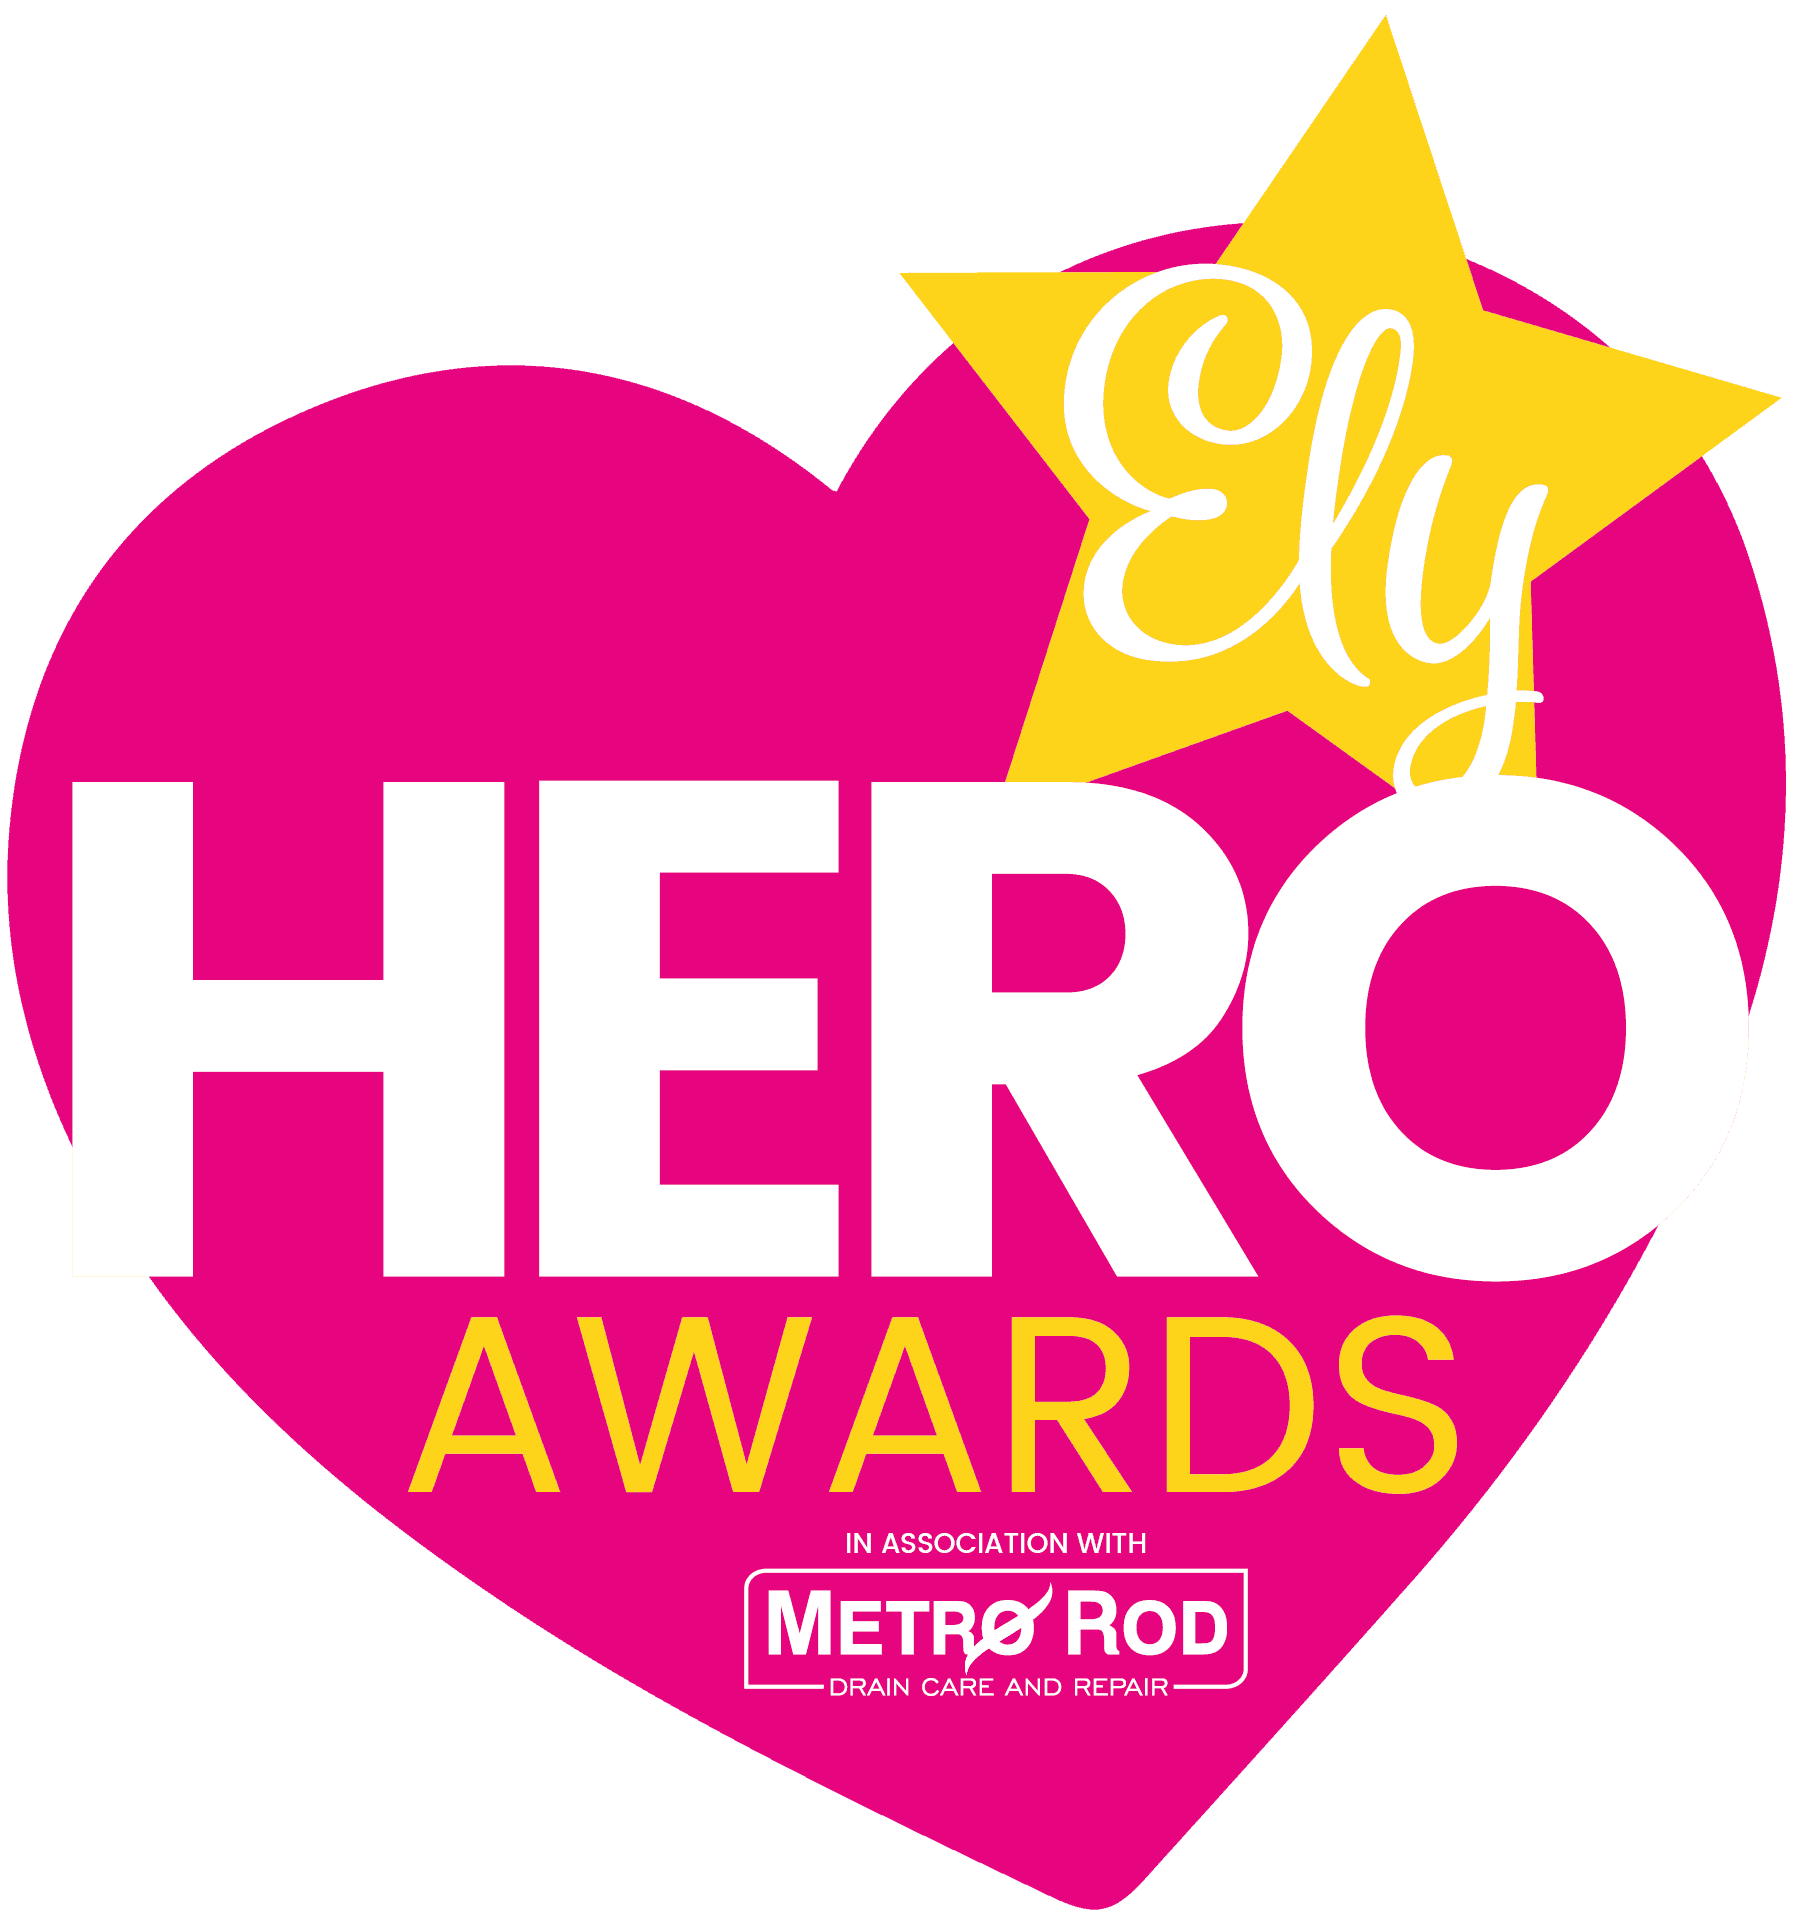 ely-hero-awards-logo.png